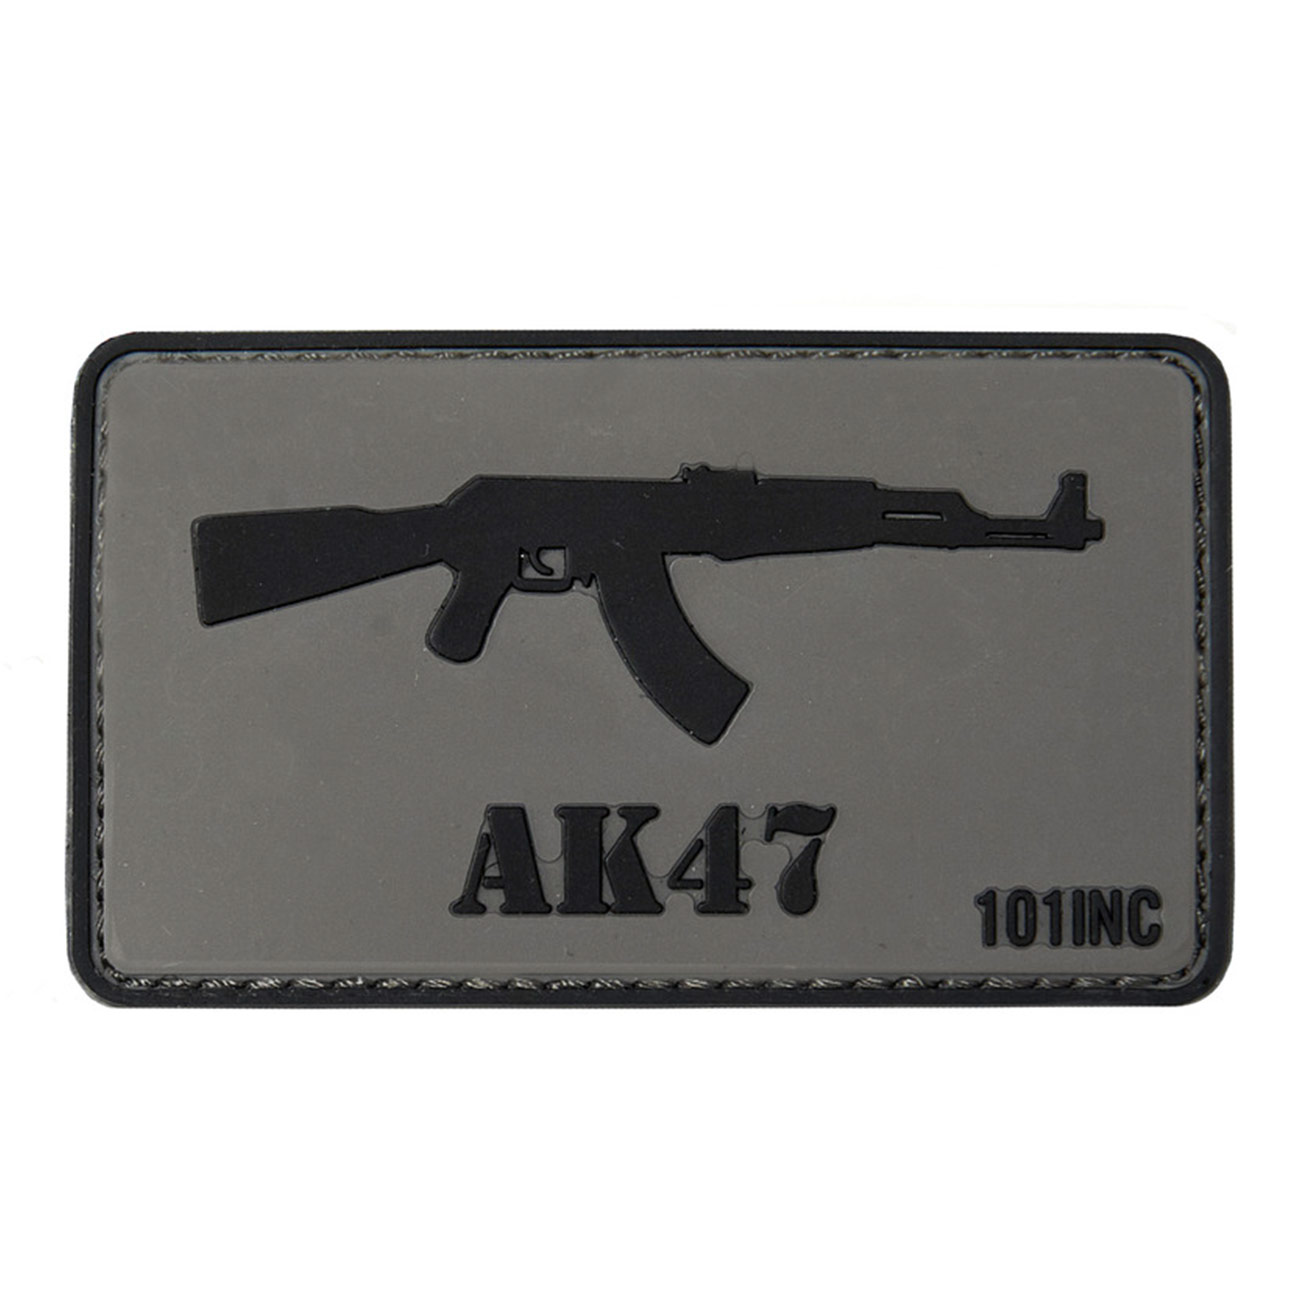 101 INC 3D Rubber Patch AK47 0